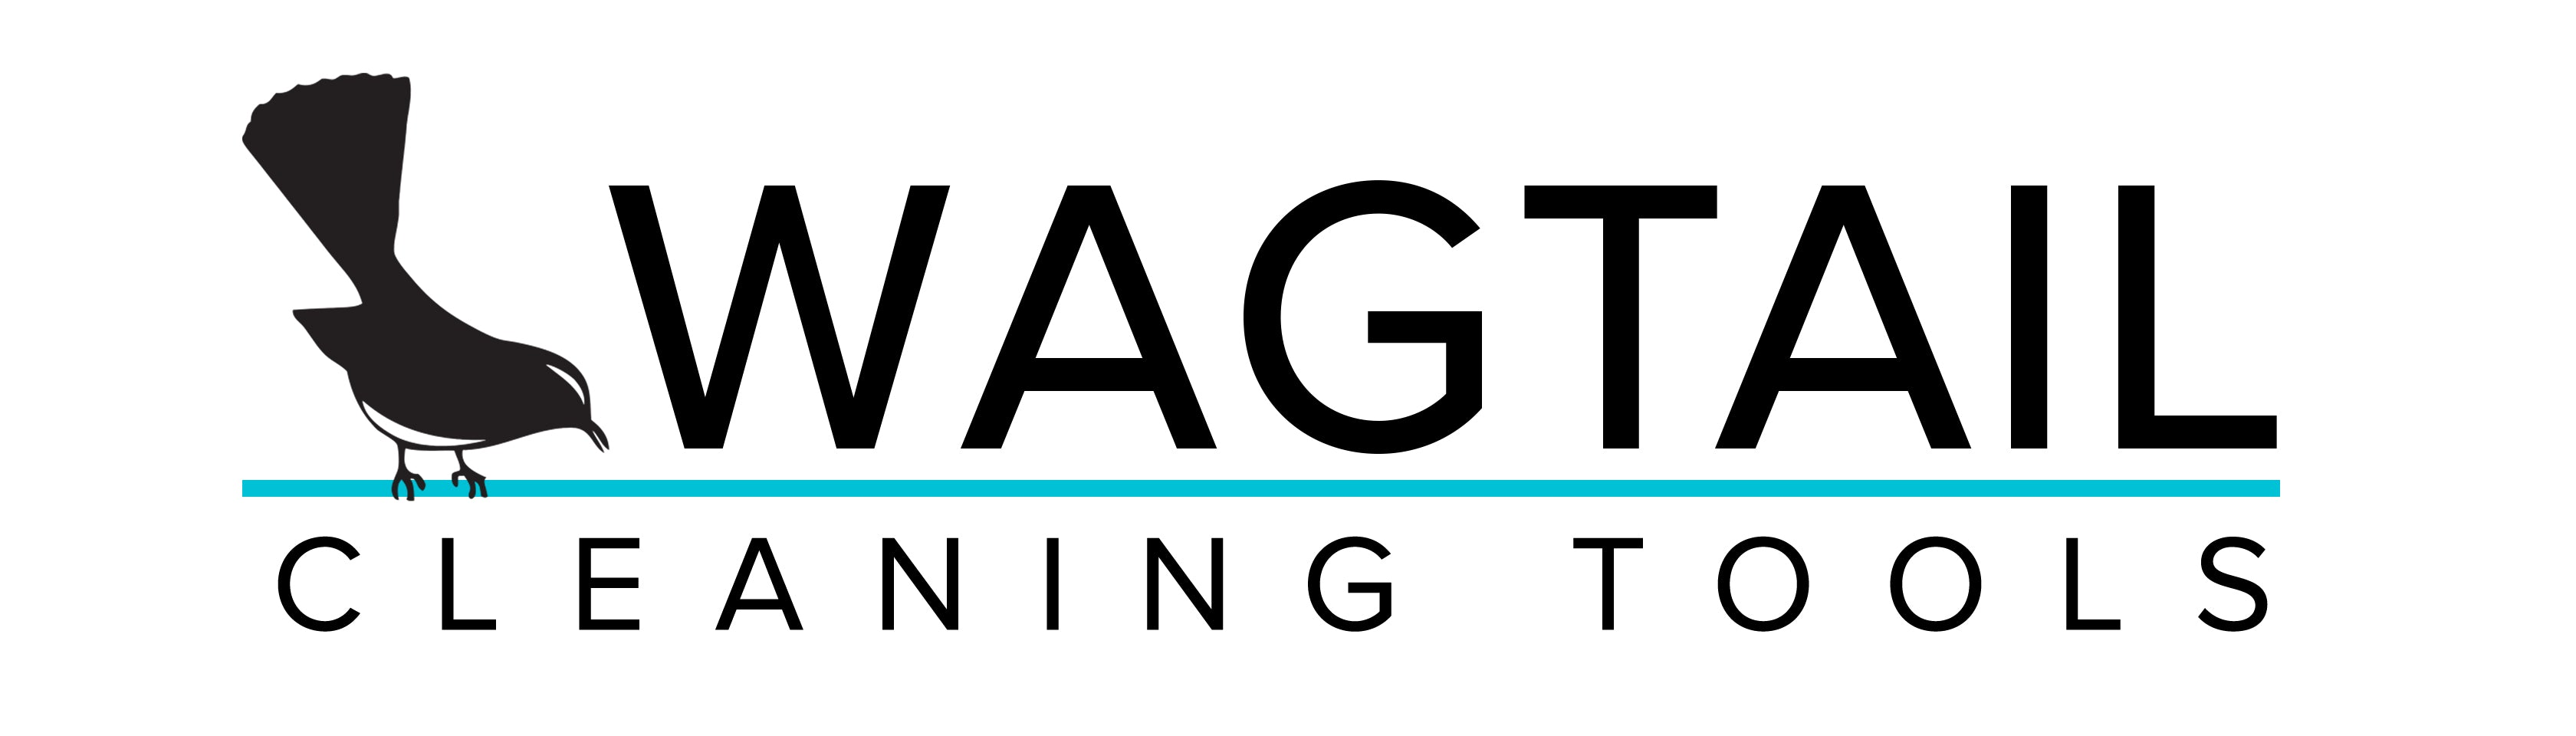 Wagtail Cleaning Tools